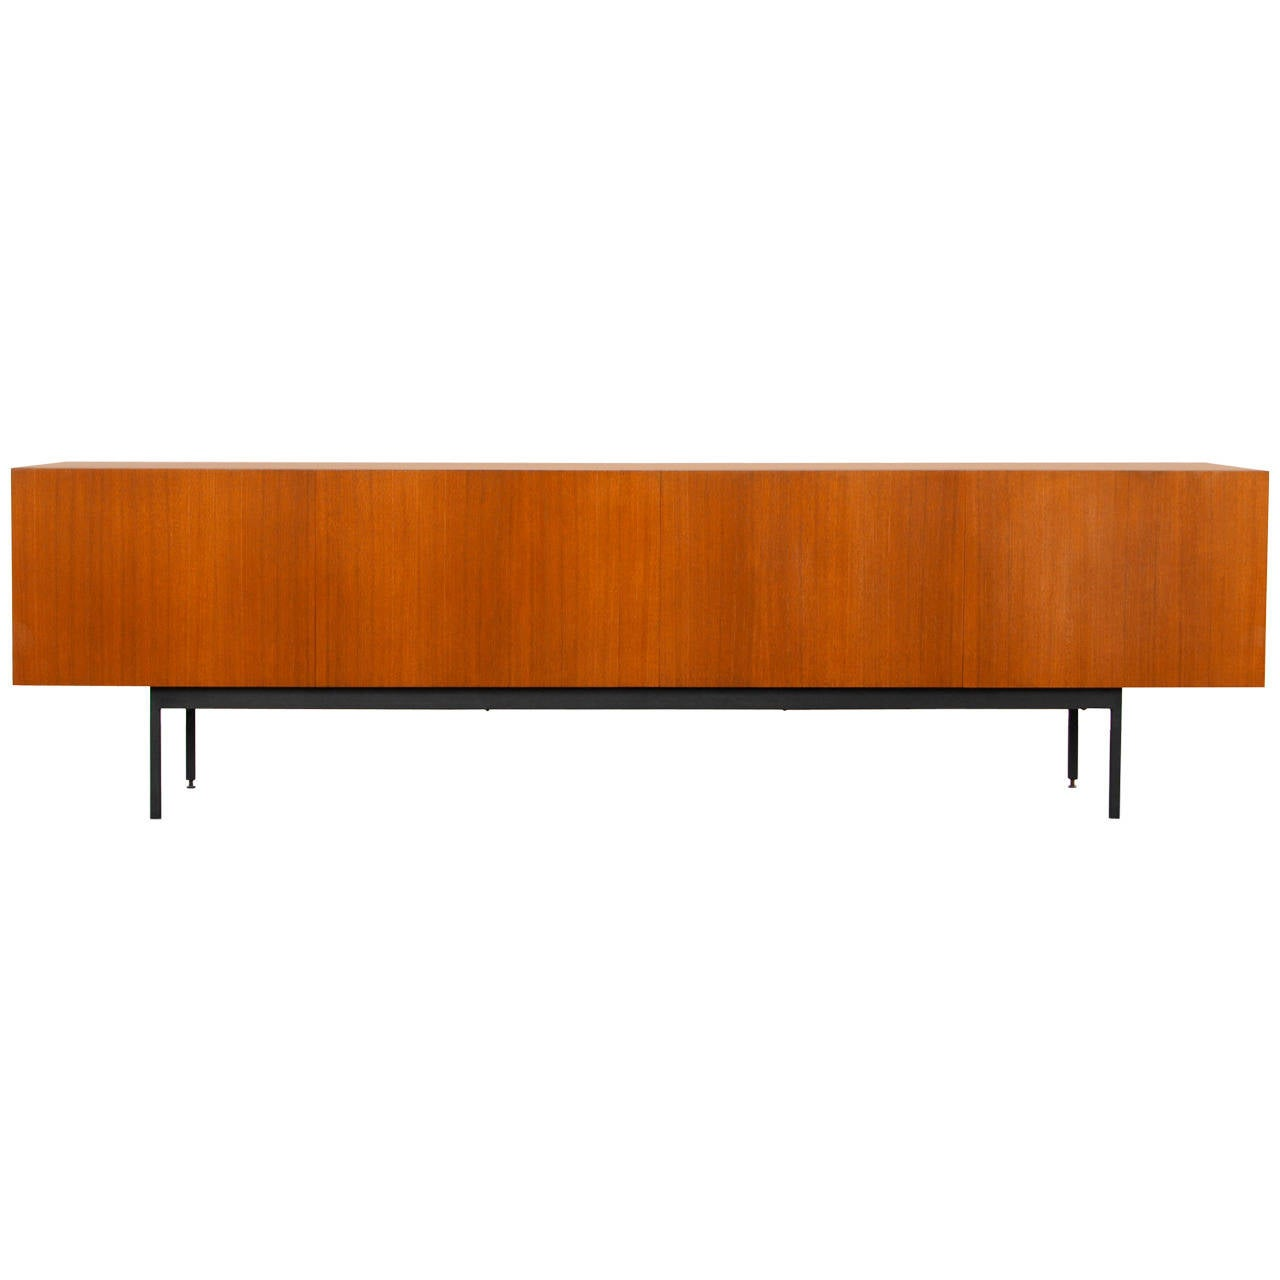 B40 Teak Sideboard by Dieter Waeckerlin for Behr Mid